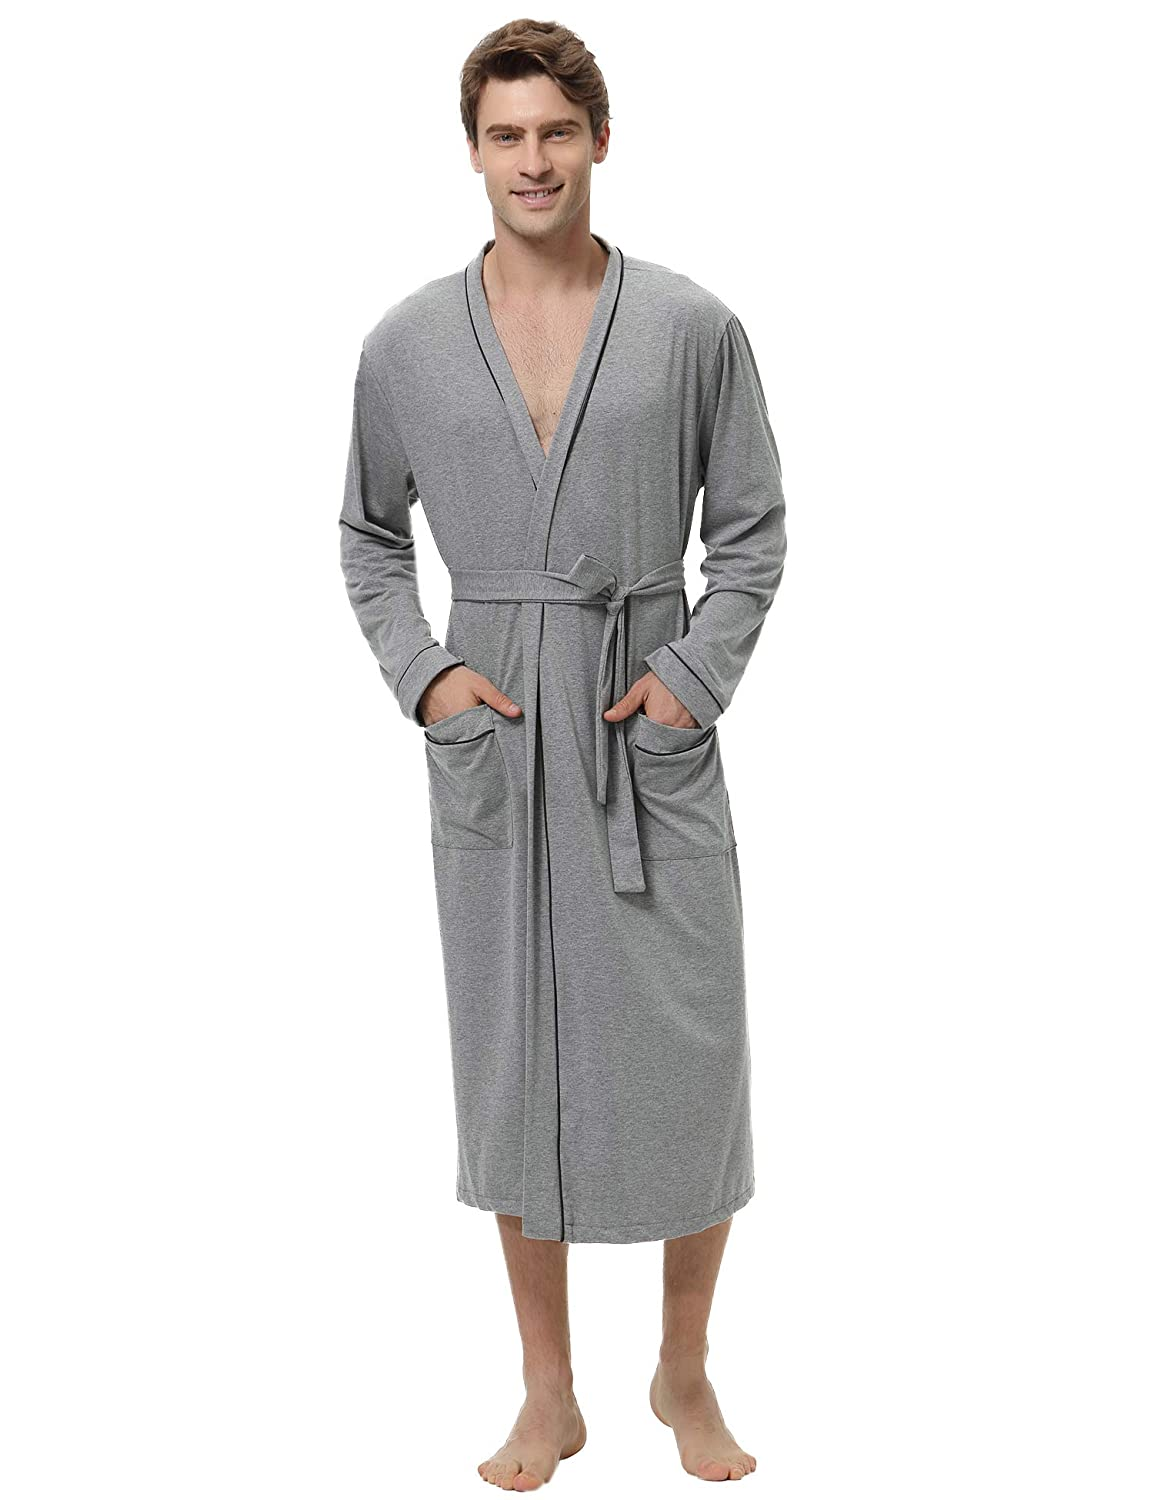 Aibrou Mens Cotton Robe Lightweight Long Lounge Sleepwear Knit Bathrobe AMB00166